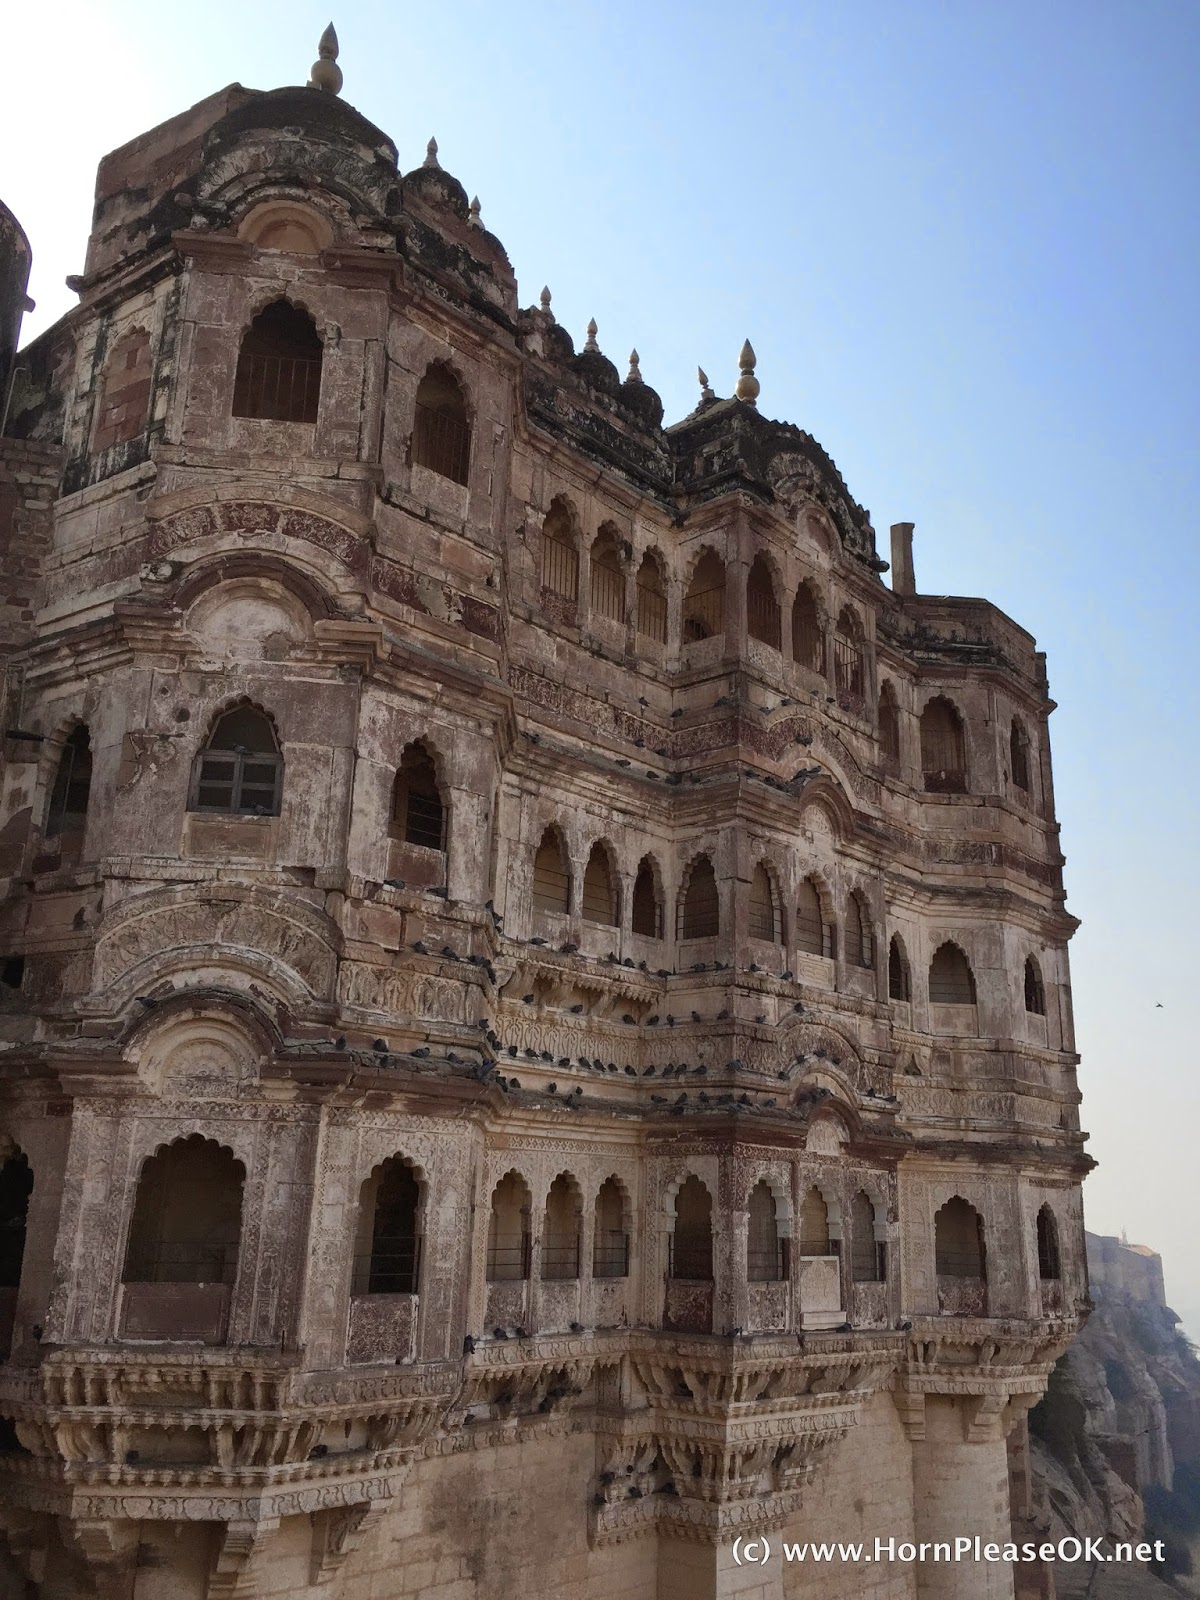 A palace within Mehrangarh Fort